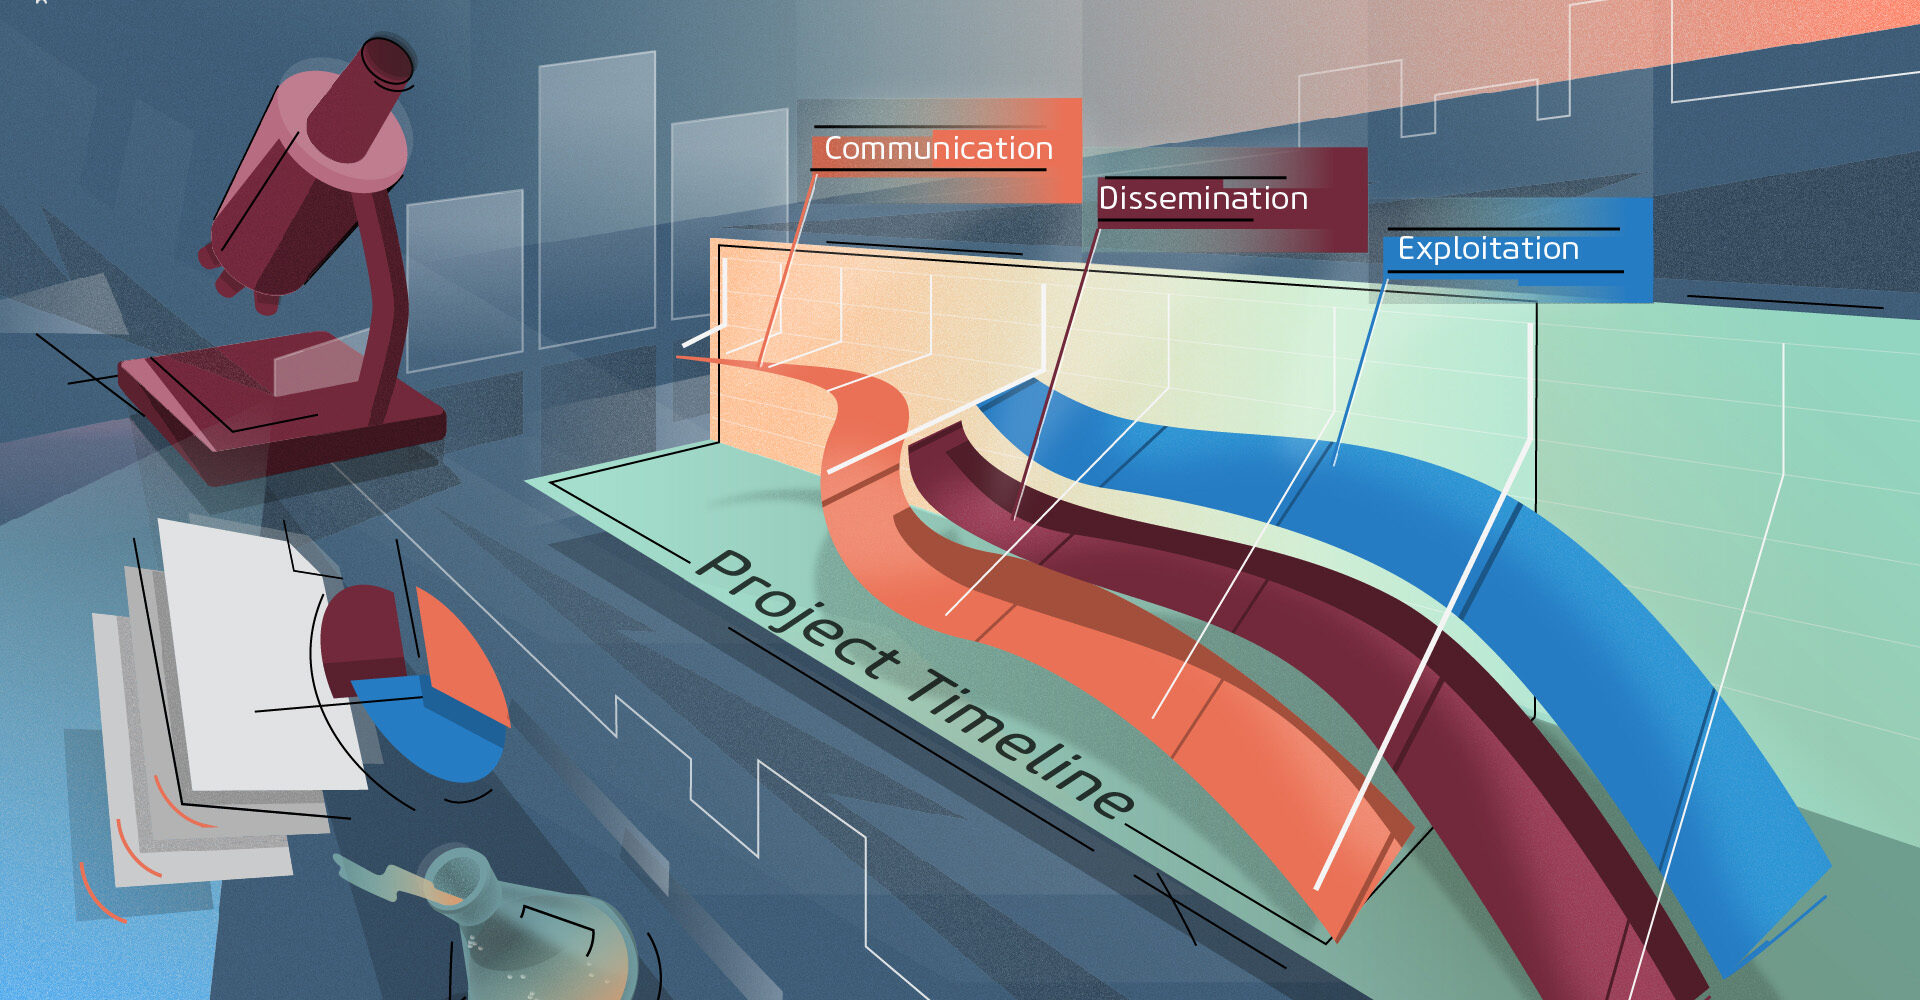 research propsal_dissemination_impact_science_plan_ilustration1